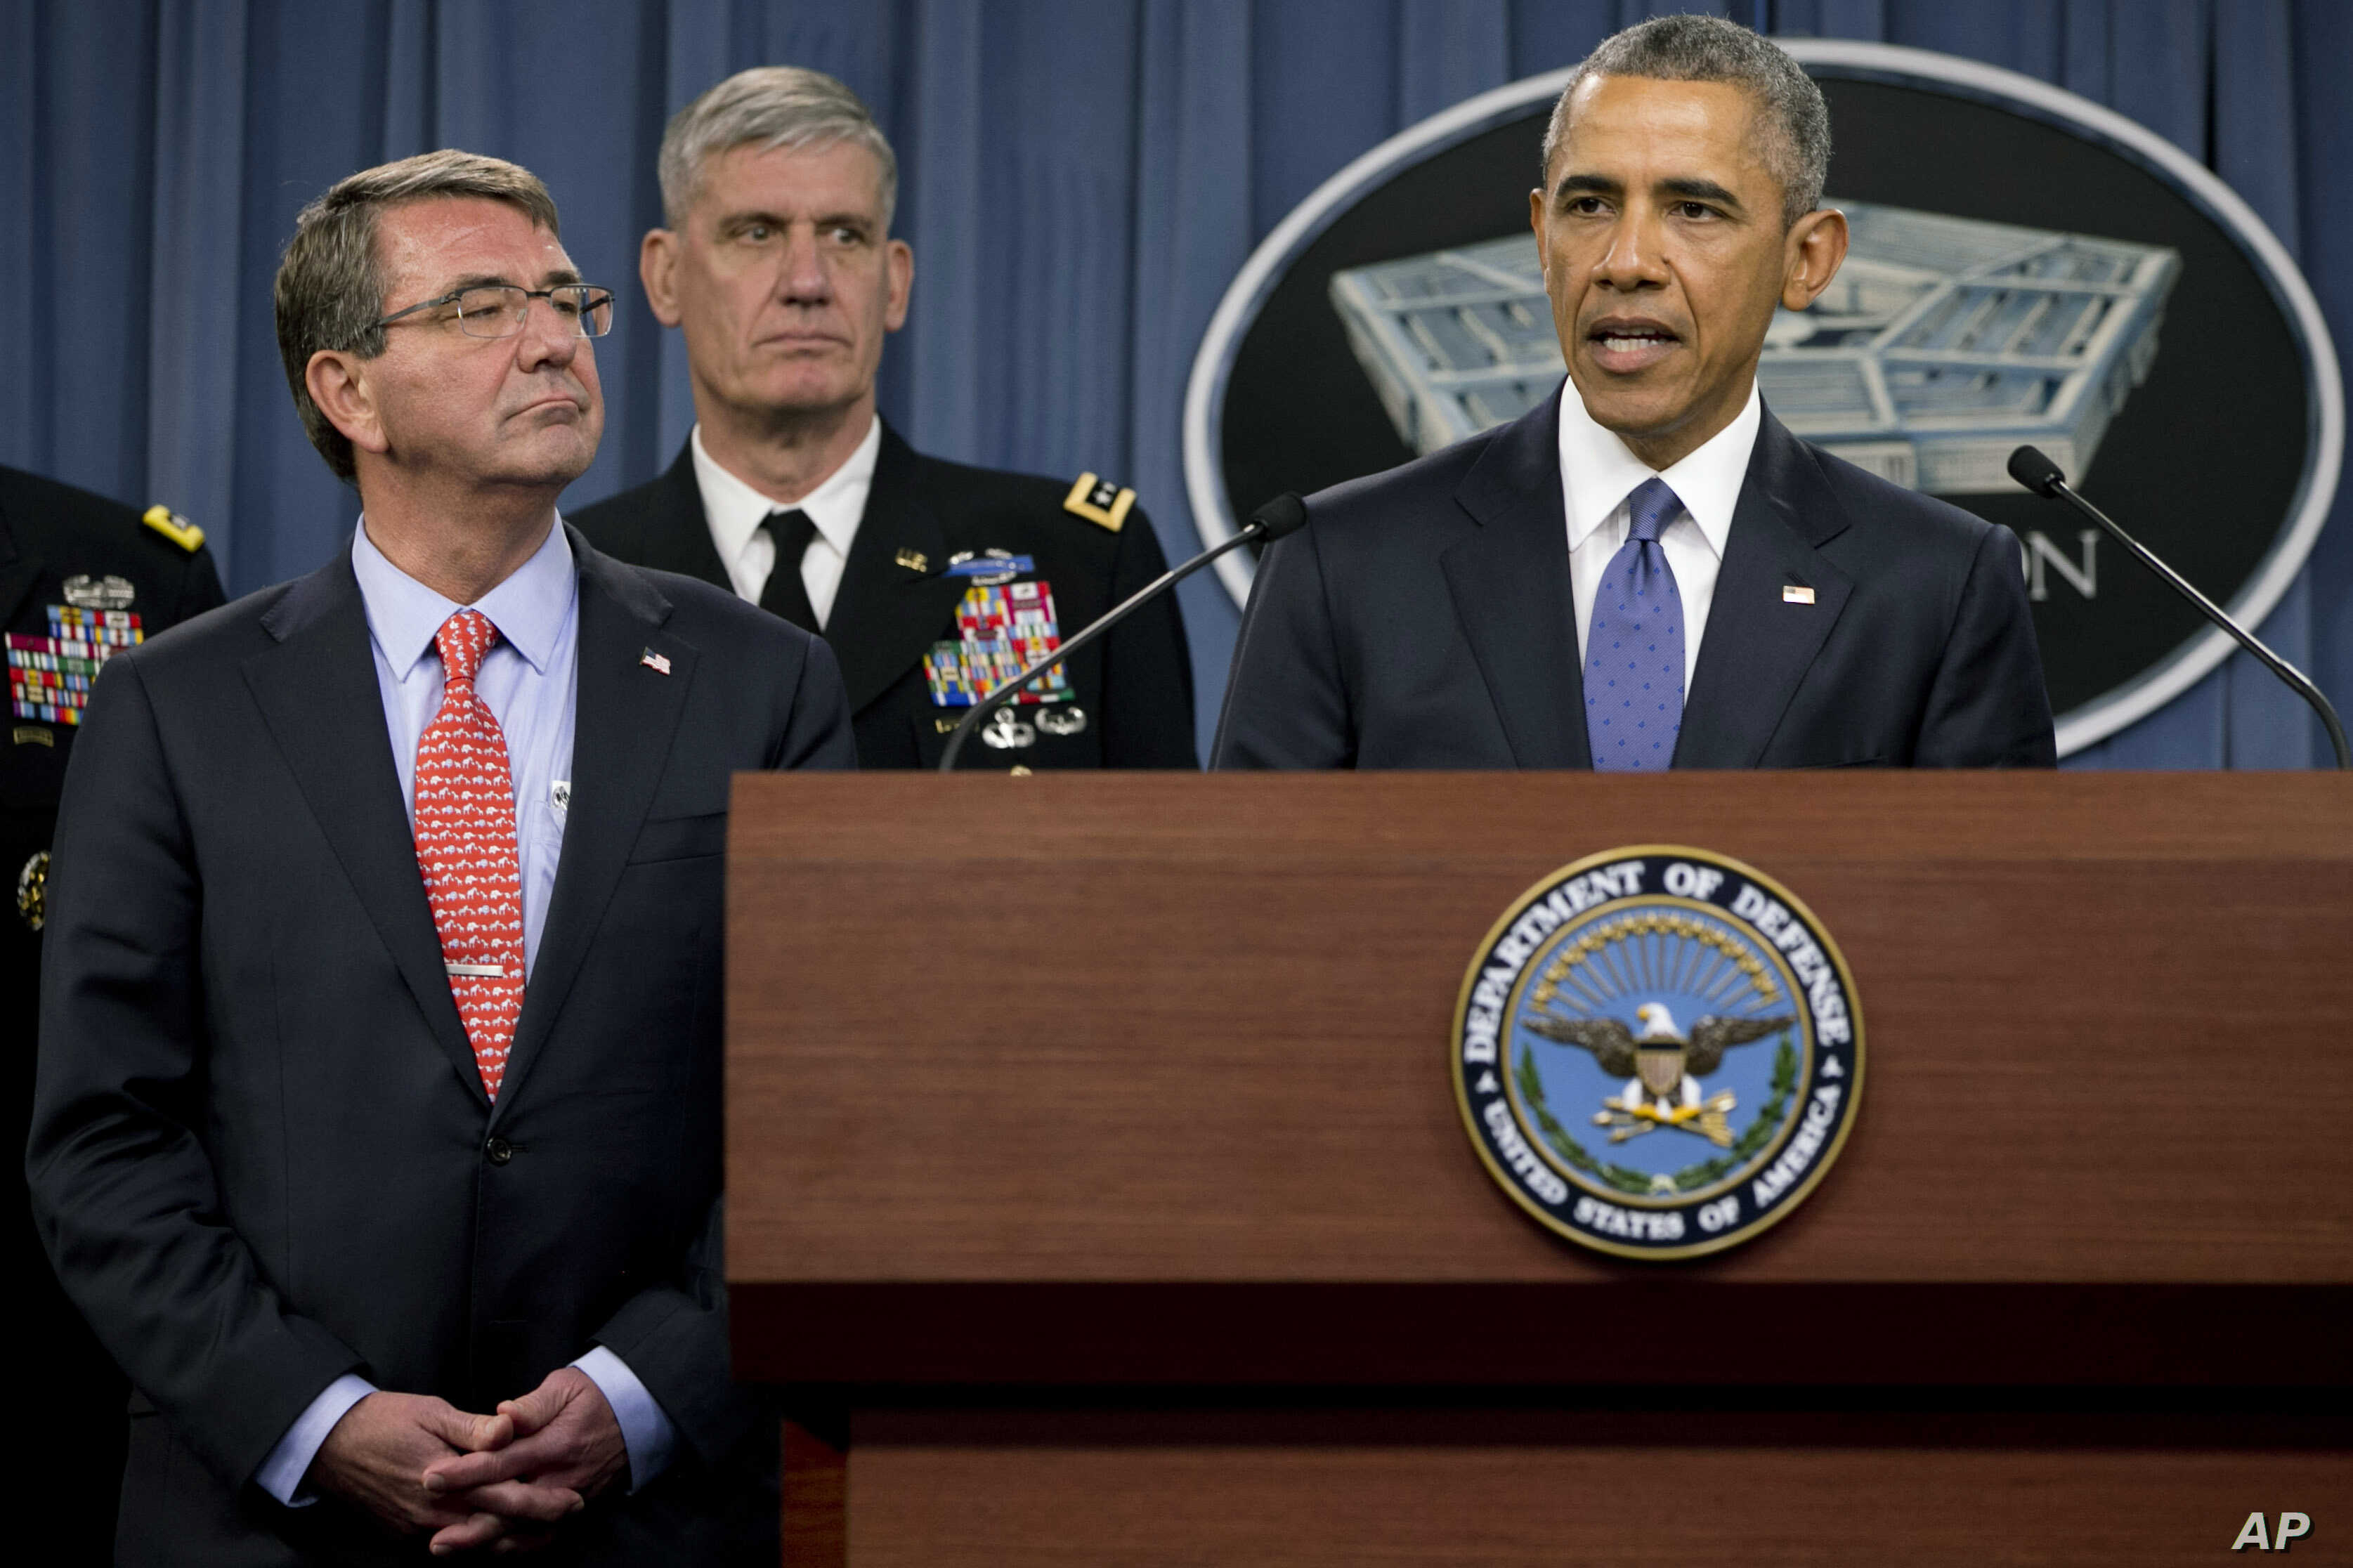 President Barack Obama, right, speaks to the media after receiving an update from military leaders on the campaign against the Islamic State, during a rare visit to the Pentagon, July 6, 2015. Defense Secretary Ash Carter is at left.